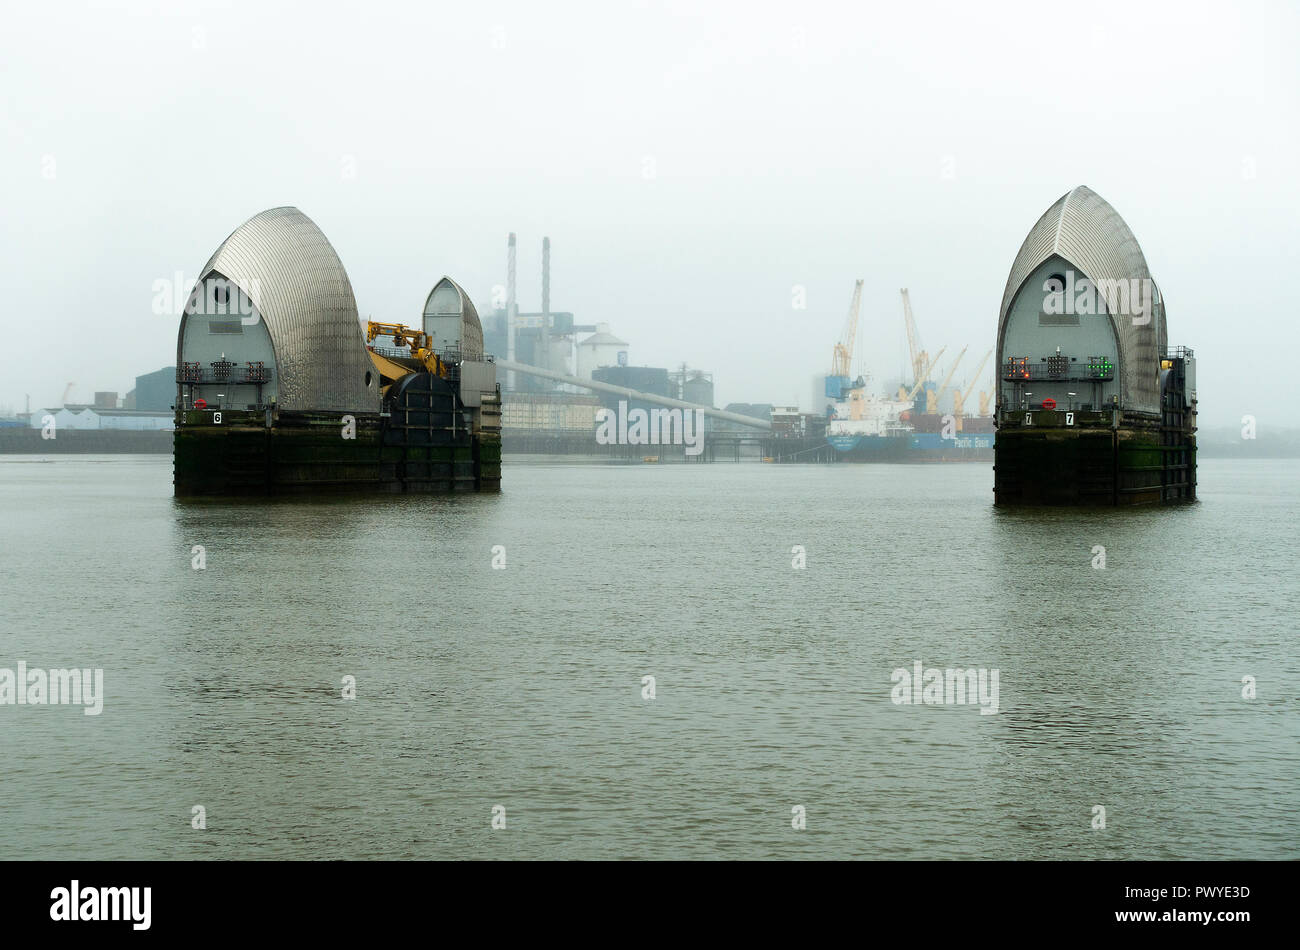 The Thames Barrier Flood Defences in the River Thames near Greenwich and Silvertown Greater London England United Kingdom - Stock Image